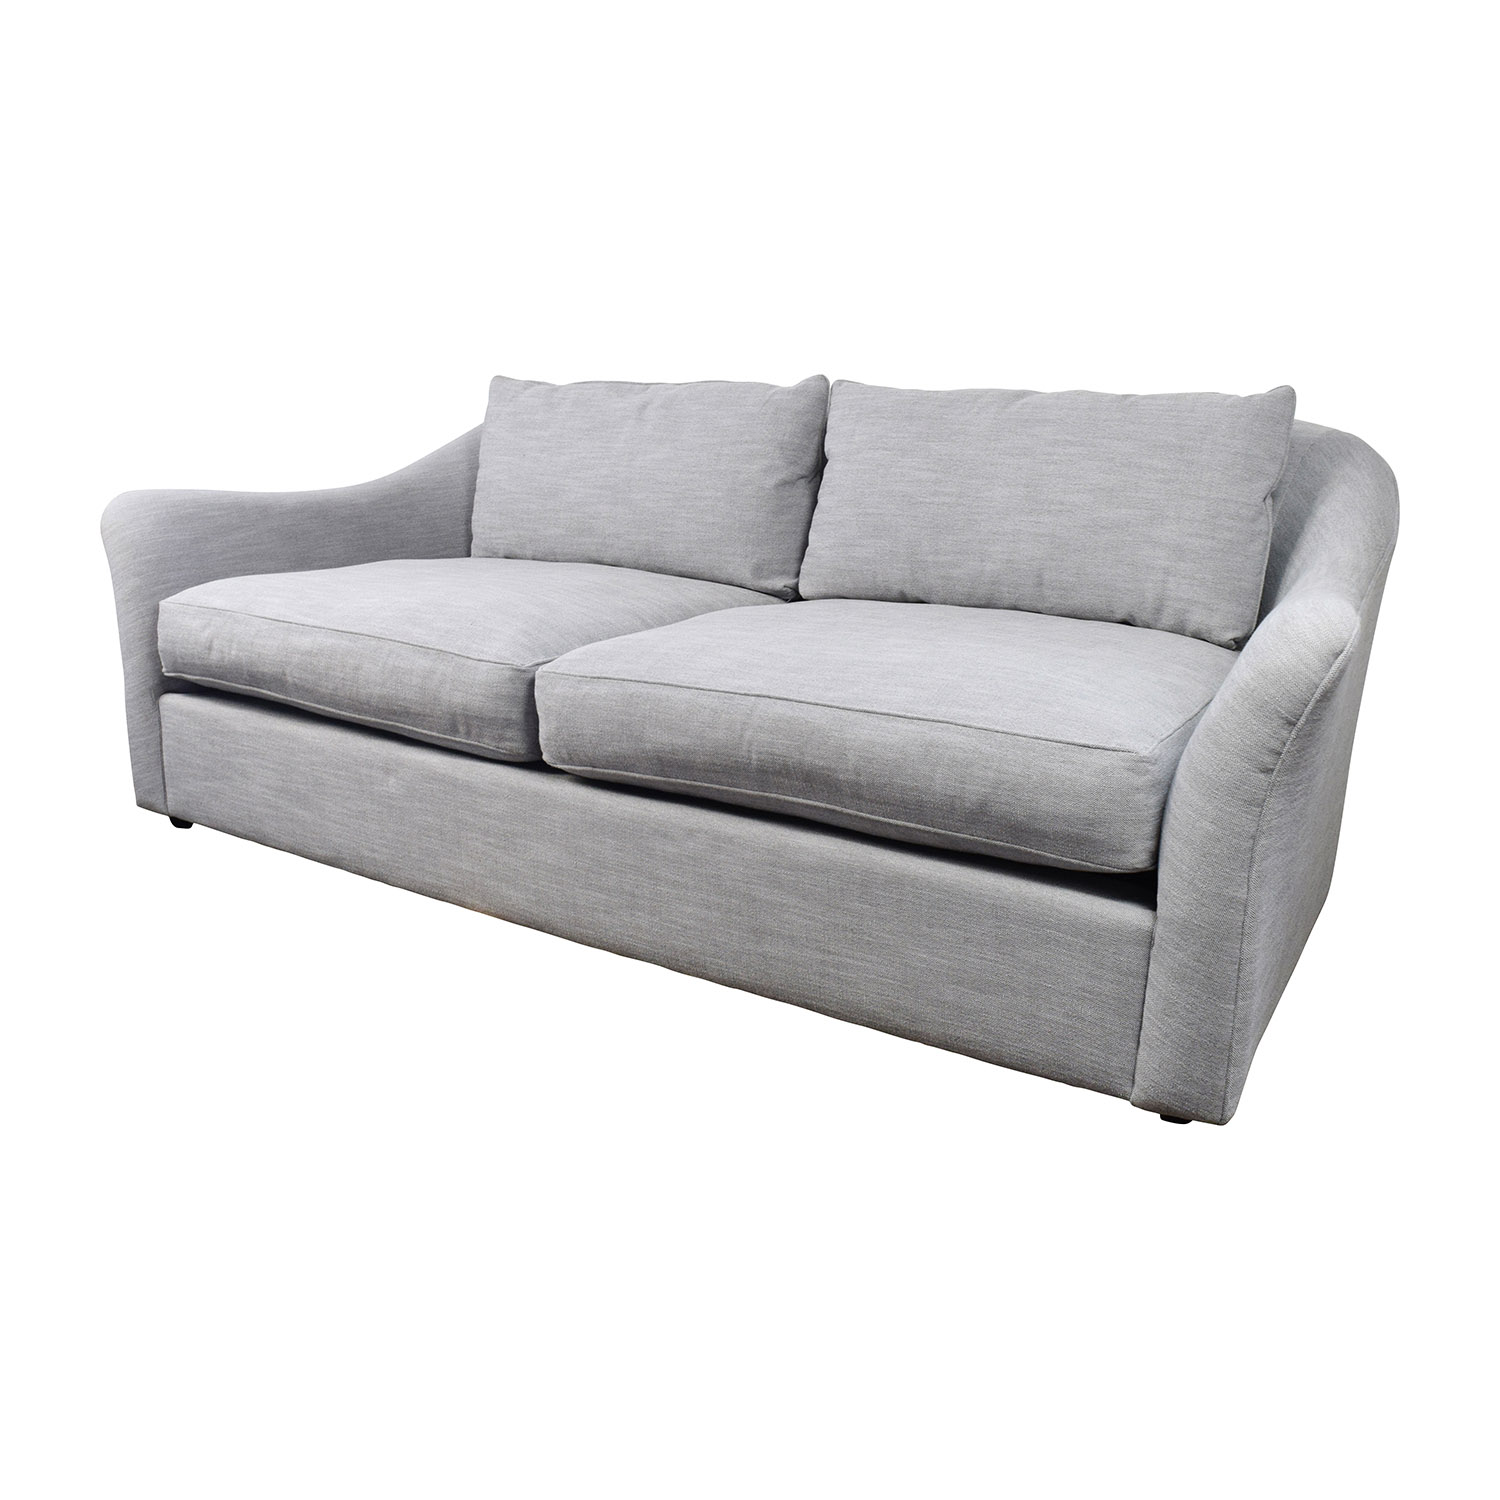 30 OFF West Elm Delaney Sofa West Elm Delaney Grey Sofa Sofas